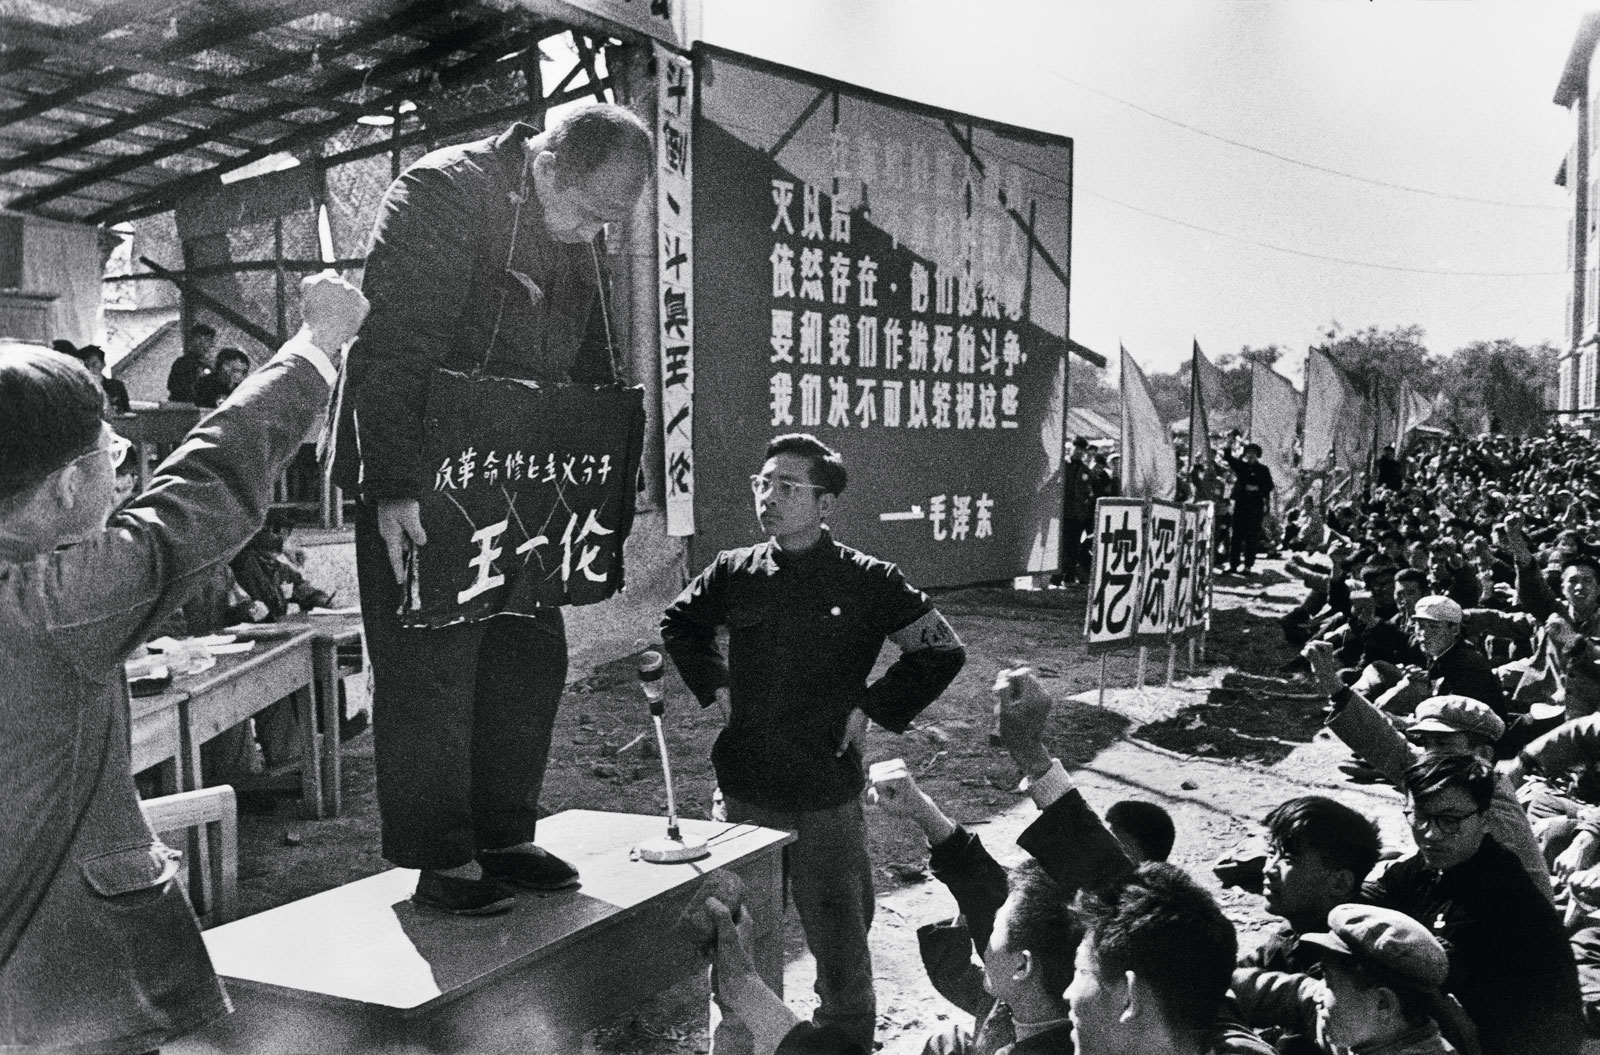 Fascists from the Chinese Communist Party shame a man during the Cultural Revolution